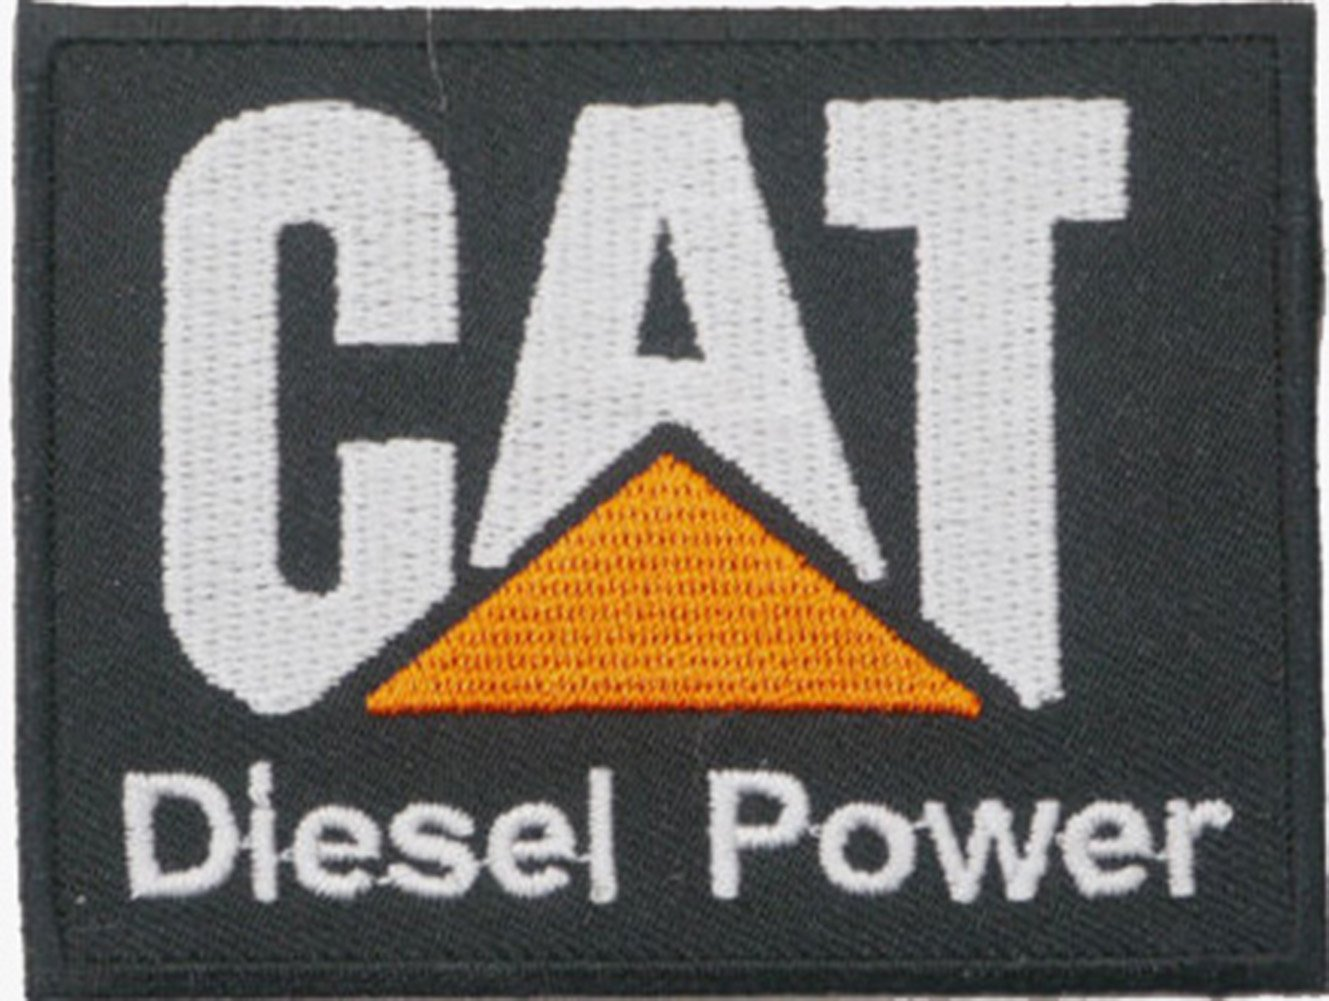 CAT Diesel Power Embroidered Iron on Patch Sew On Badge